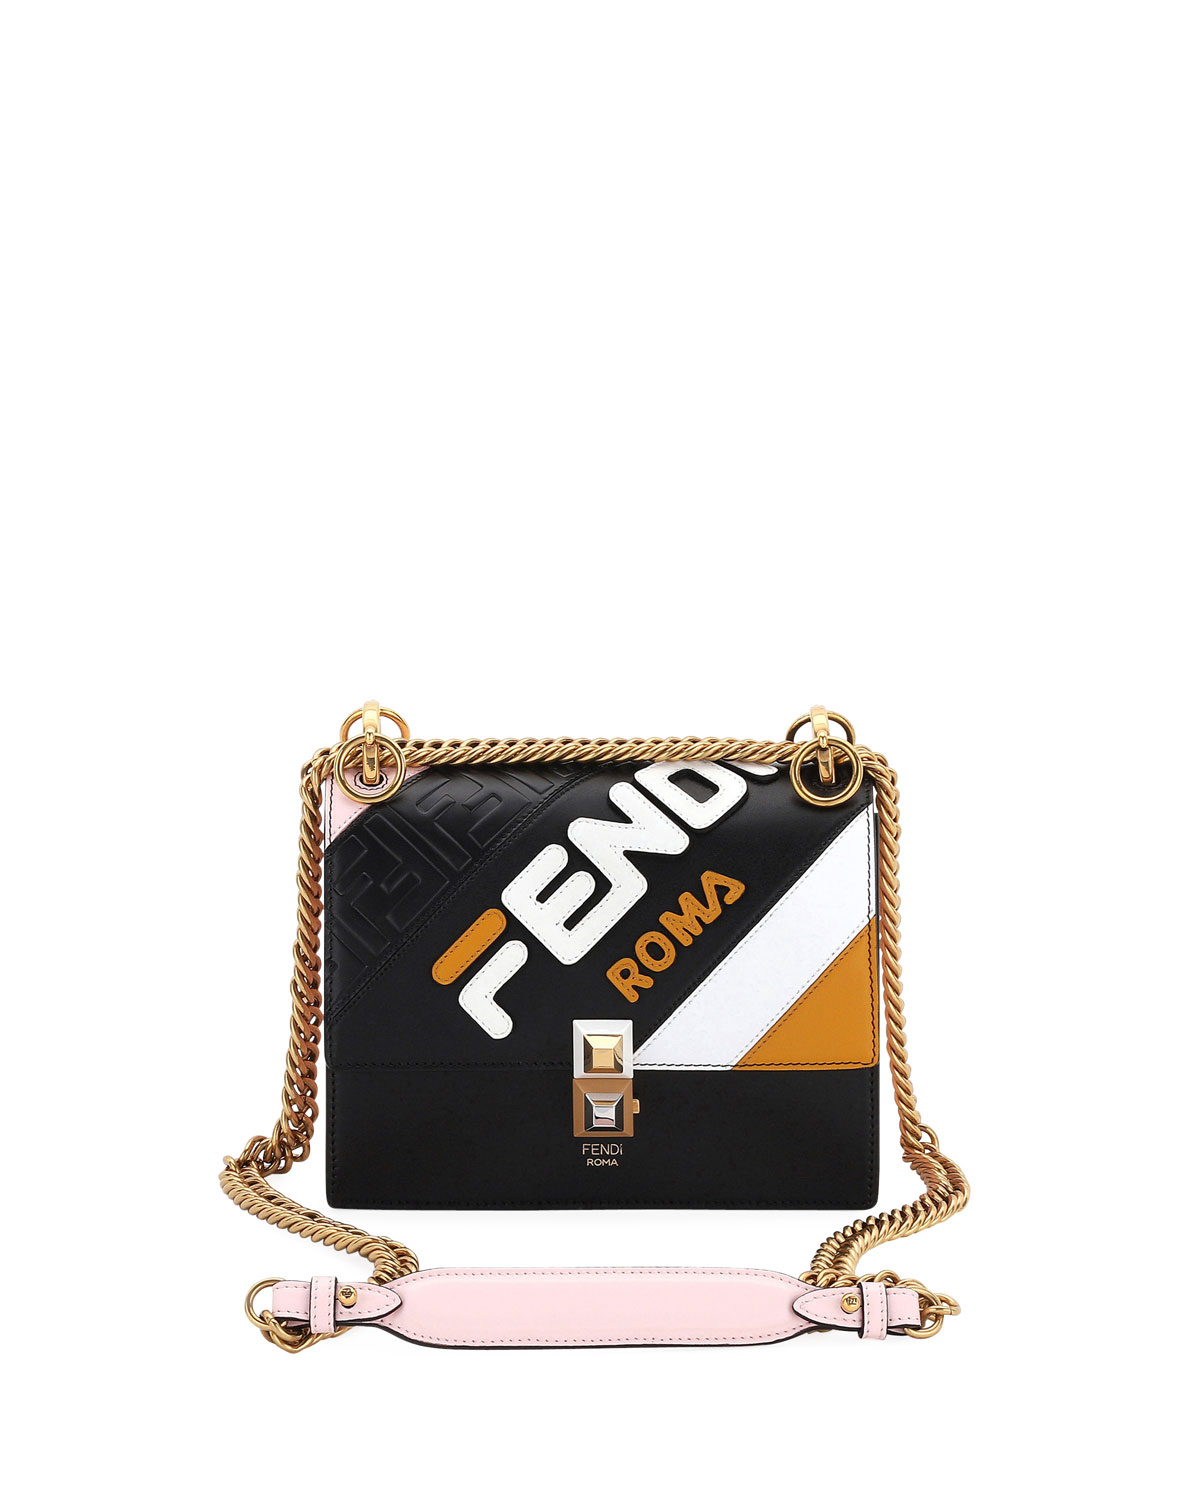 Fendi Mania Kan I Small Shoulder Bag by Fendi